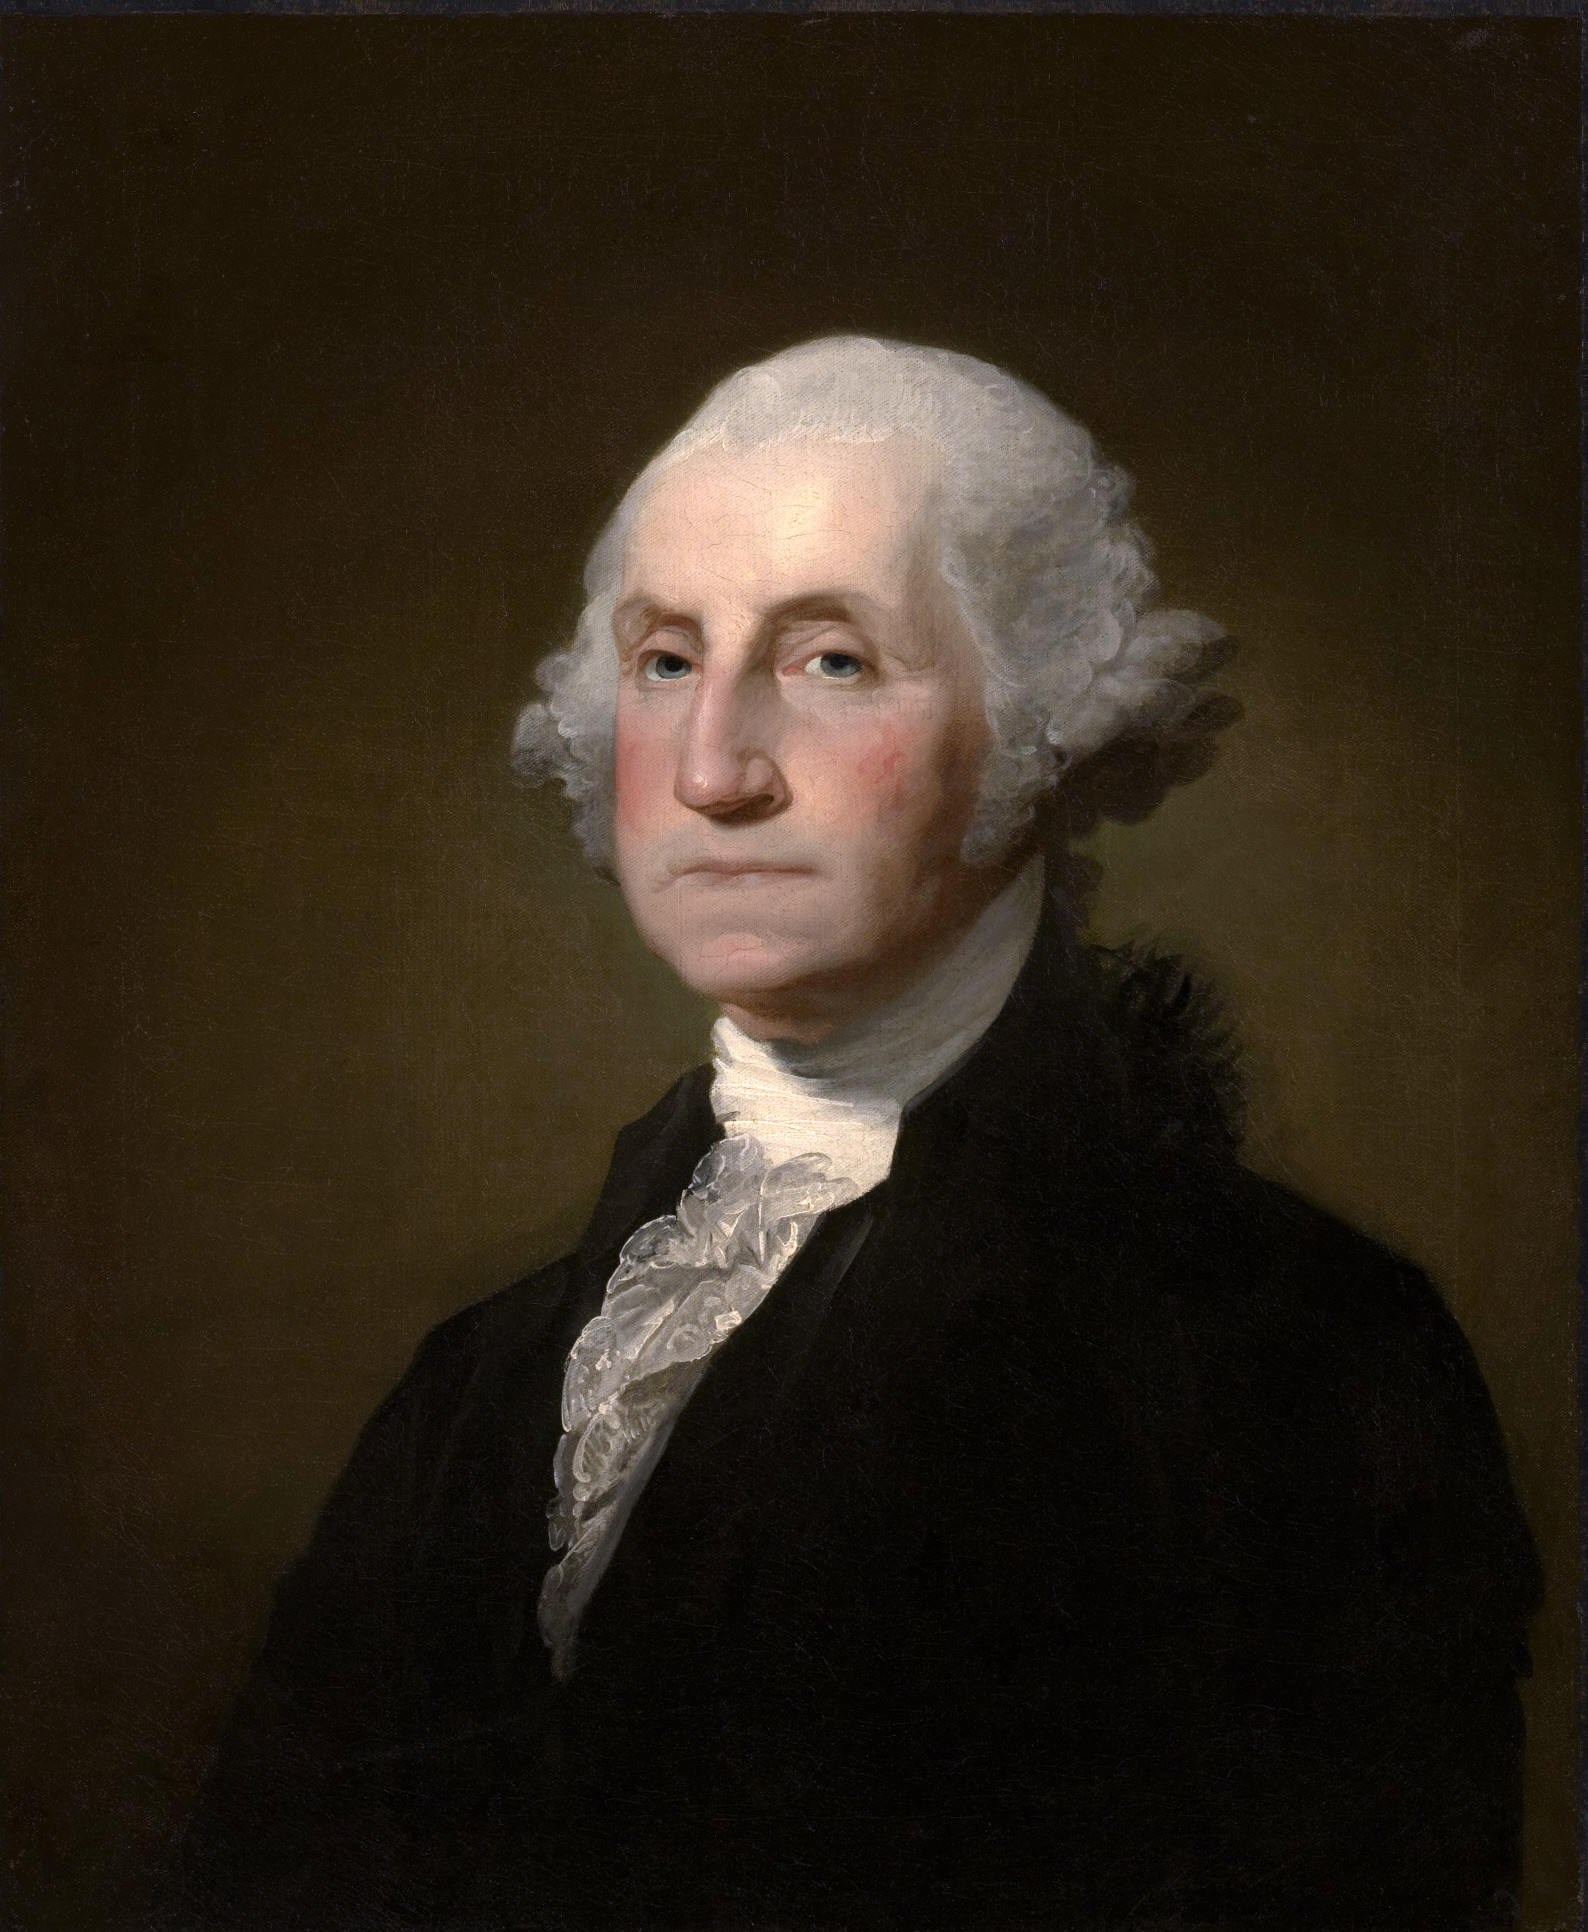 George Washington height